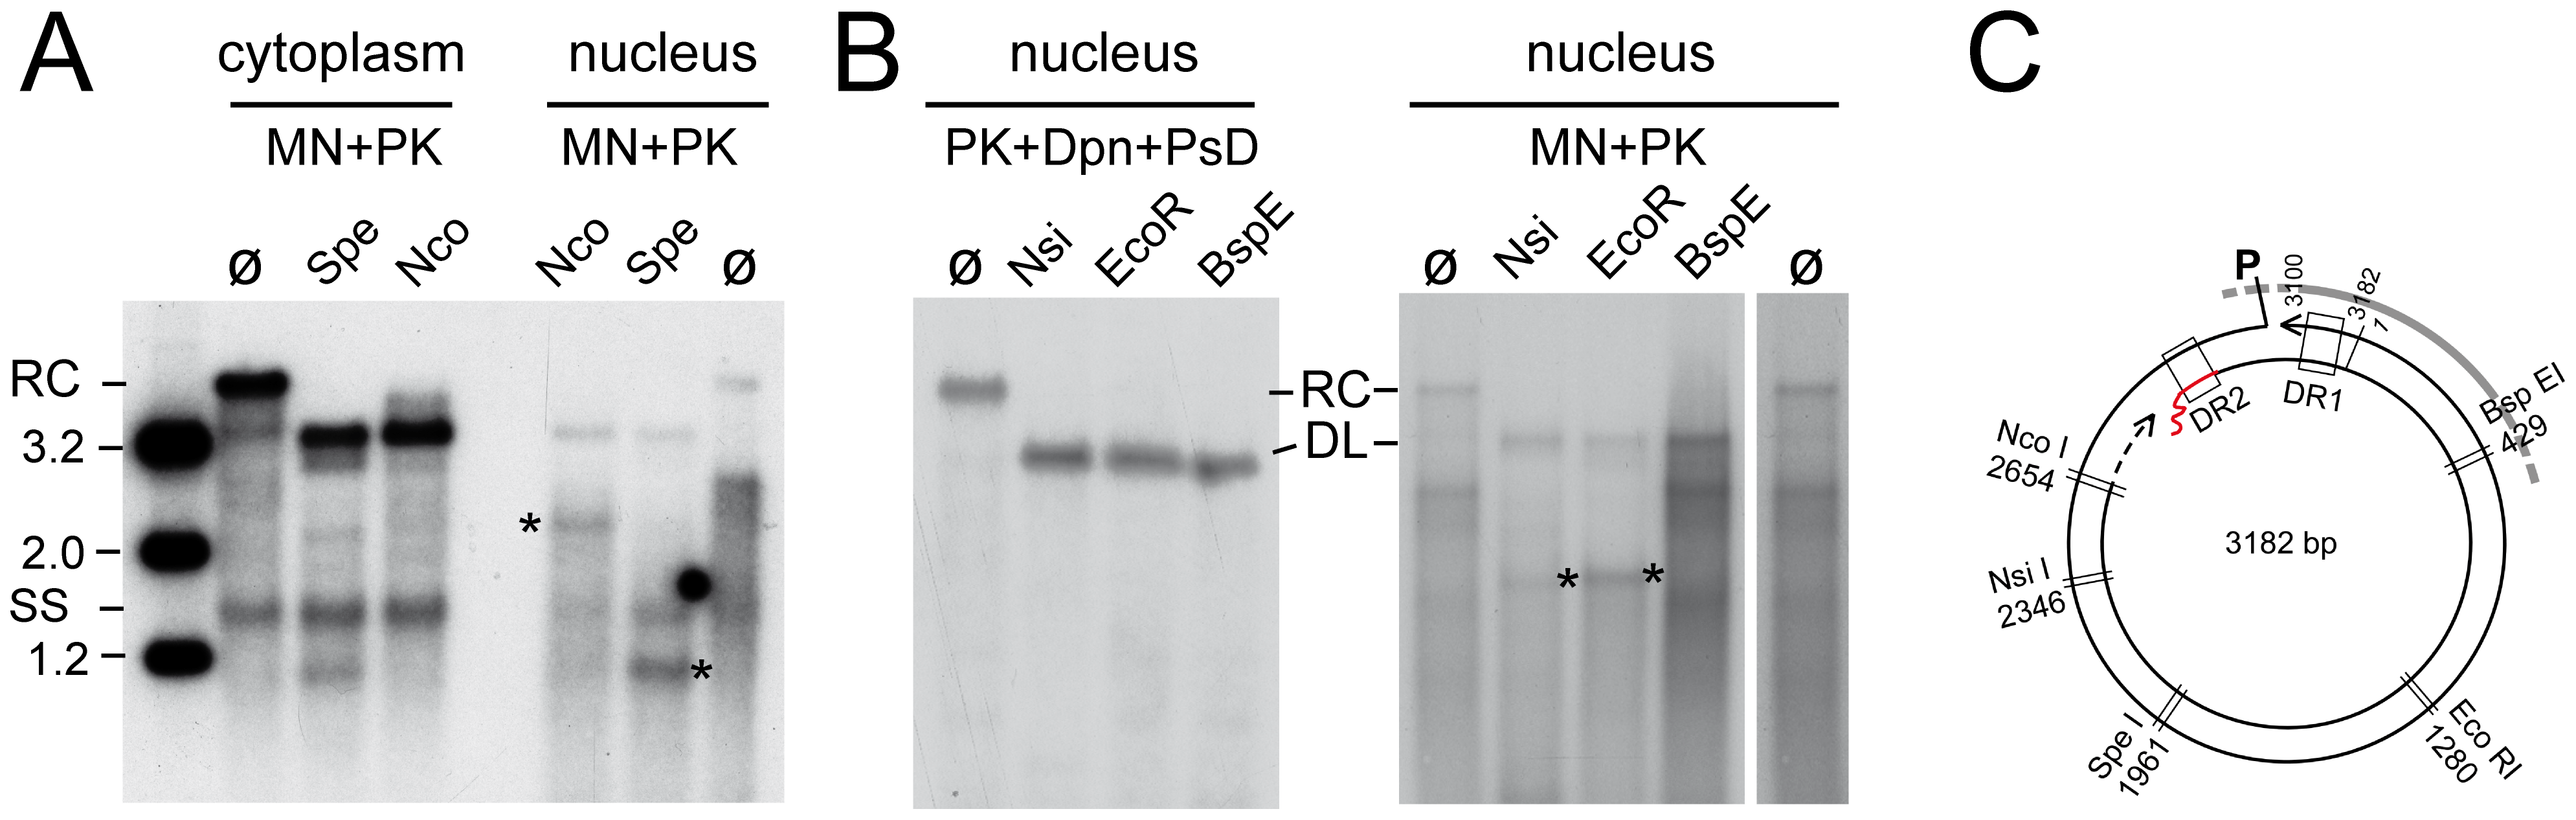 Restriction mapping of nuclear HBV rcDNA suggests genome region-selective MN accessibility.